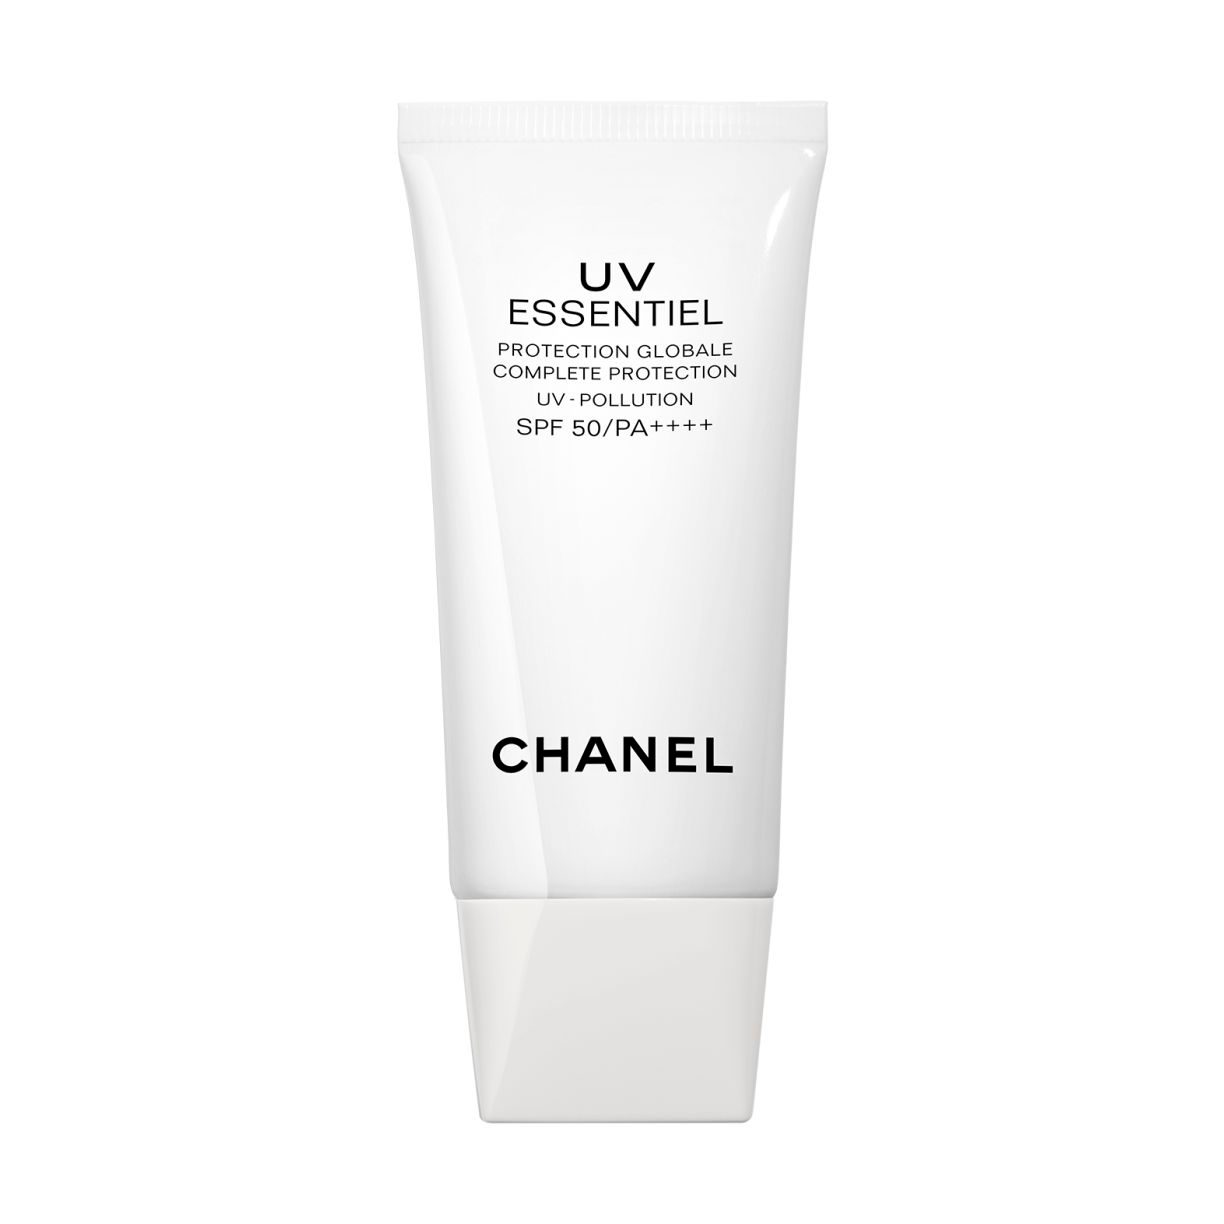 UV ESSENTIEL COMPLETE PROTECTION UV – POLLUTION SPF 50/PA++++ 30ml